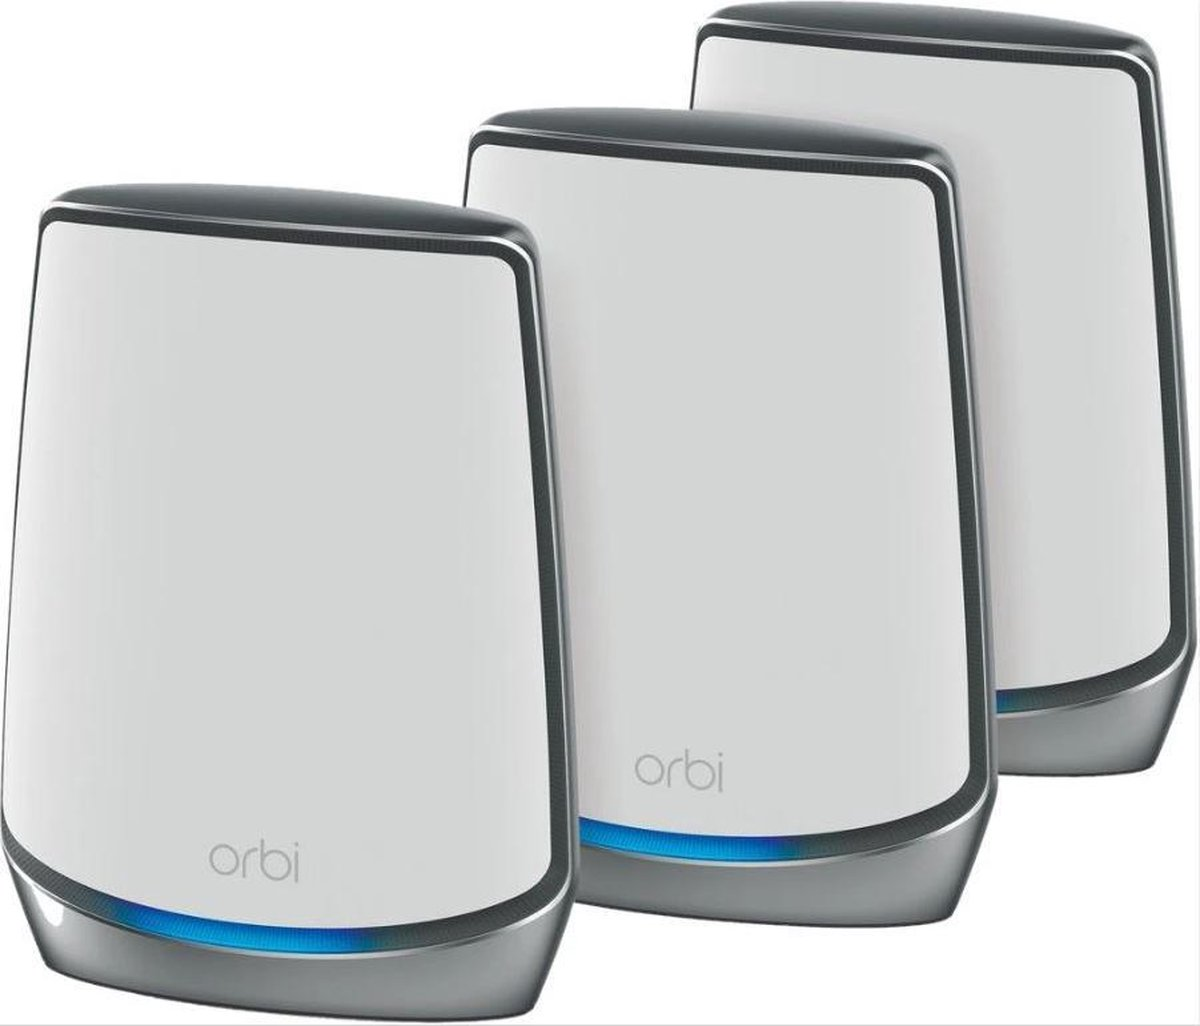 Netgear Orbi RBK853 - Multiroom Wifi - Tri-band - Router + 2 satellieten / AX6000